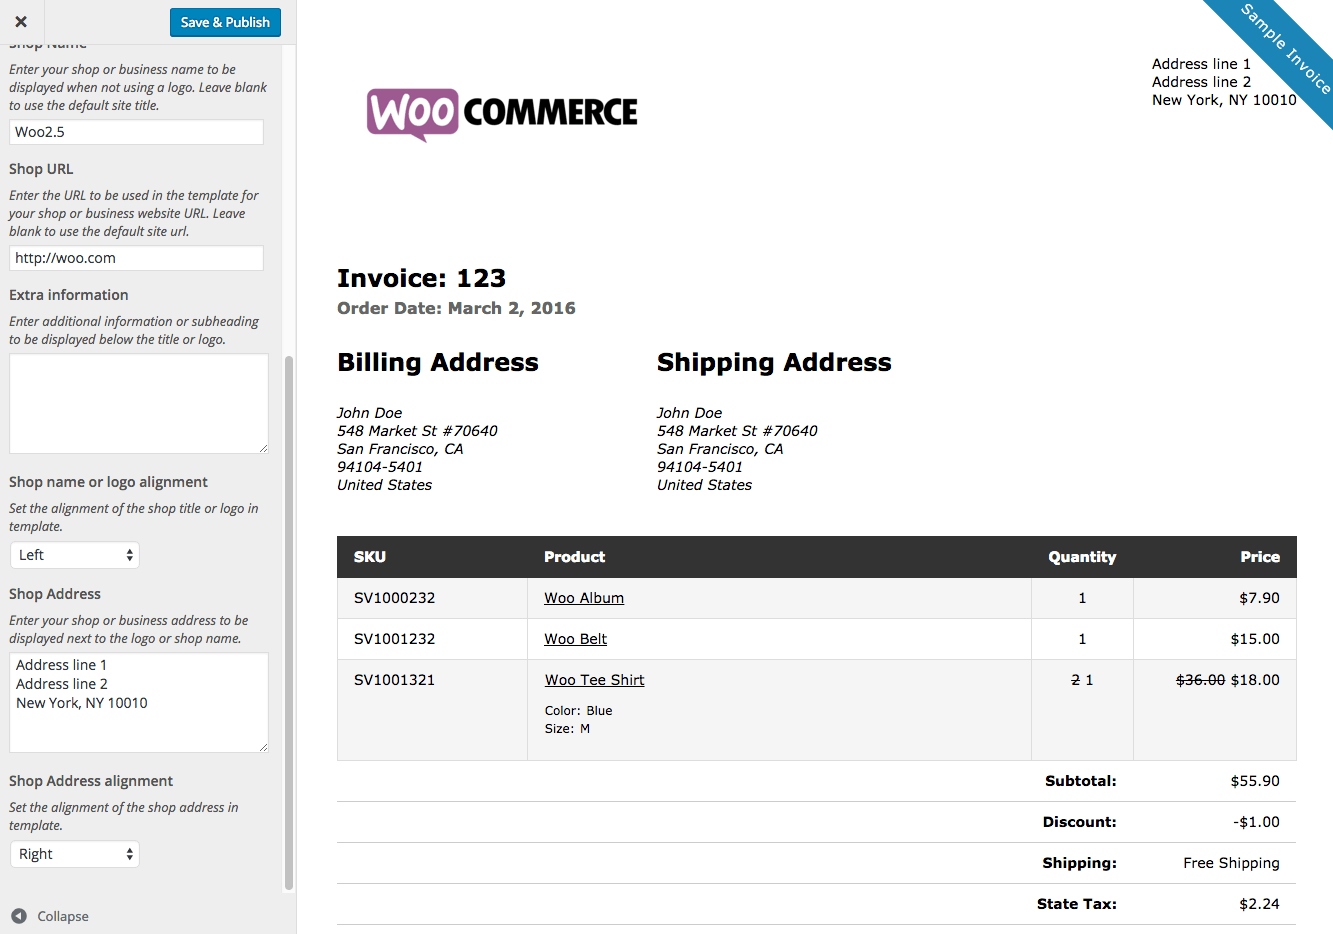 Totallocalus  Wonderful Woocommerce Print Invoices Amp Packing Lists  Woocommerce Docs With Lovely Woocommerce Print Invoices  Packing Lists Customizer With Appealing Cash Receipt Journal Template Also Passenger Receipt In Addition Sale Receipt For Used Car And Format Of Receipt Of Payment As Well As American Depository Receipts And Global Depository Receipts Additionally Lemon Receipt Scanner From Docswoocommercecom With Totallocalus  Lovely Woocommerce Print Invoices Amp Packing Lists  Woocommerce Docs With Appealing Woocommerce Print Invoices  Packing Lists Customizer And Wonderful Cash Receipt Journal Template Also Passenger Receipt In Addition Sale Receipt For Used Car From Docswoocommercecom